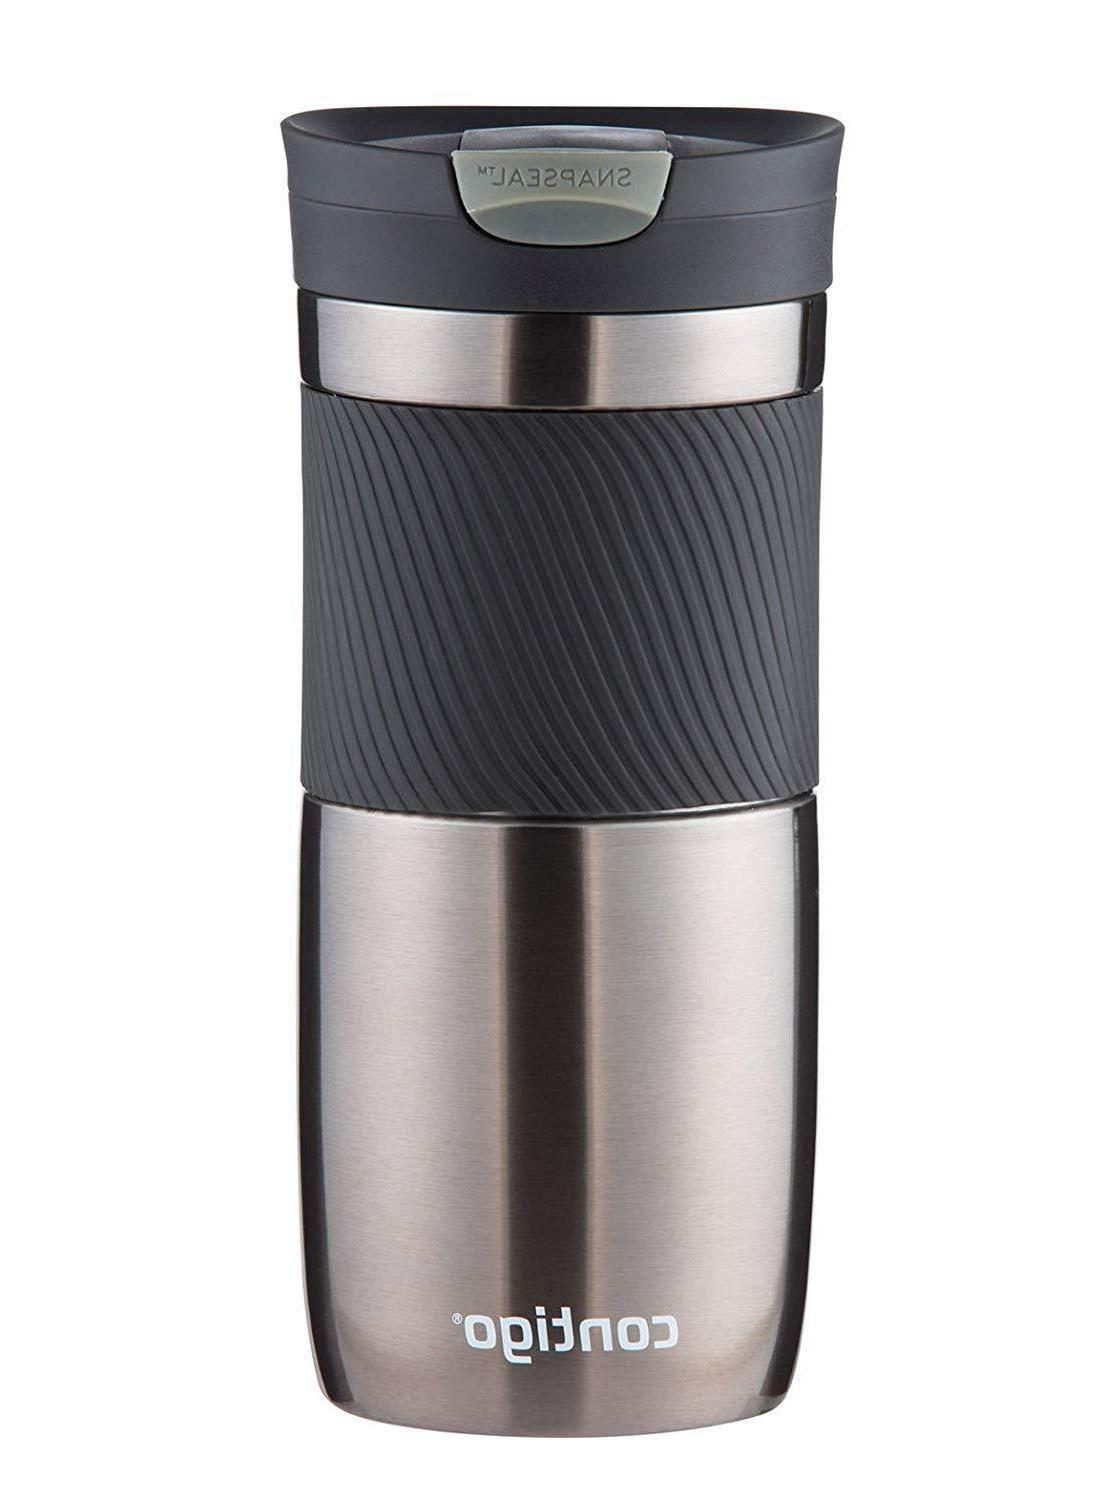 Contigo SnapSeal Byron Stainless Steel Travel Mug, 24 oz., M